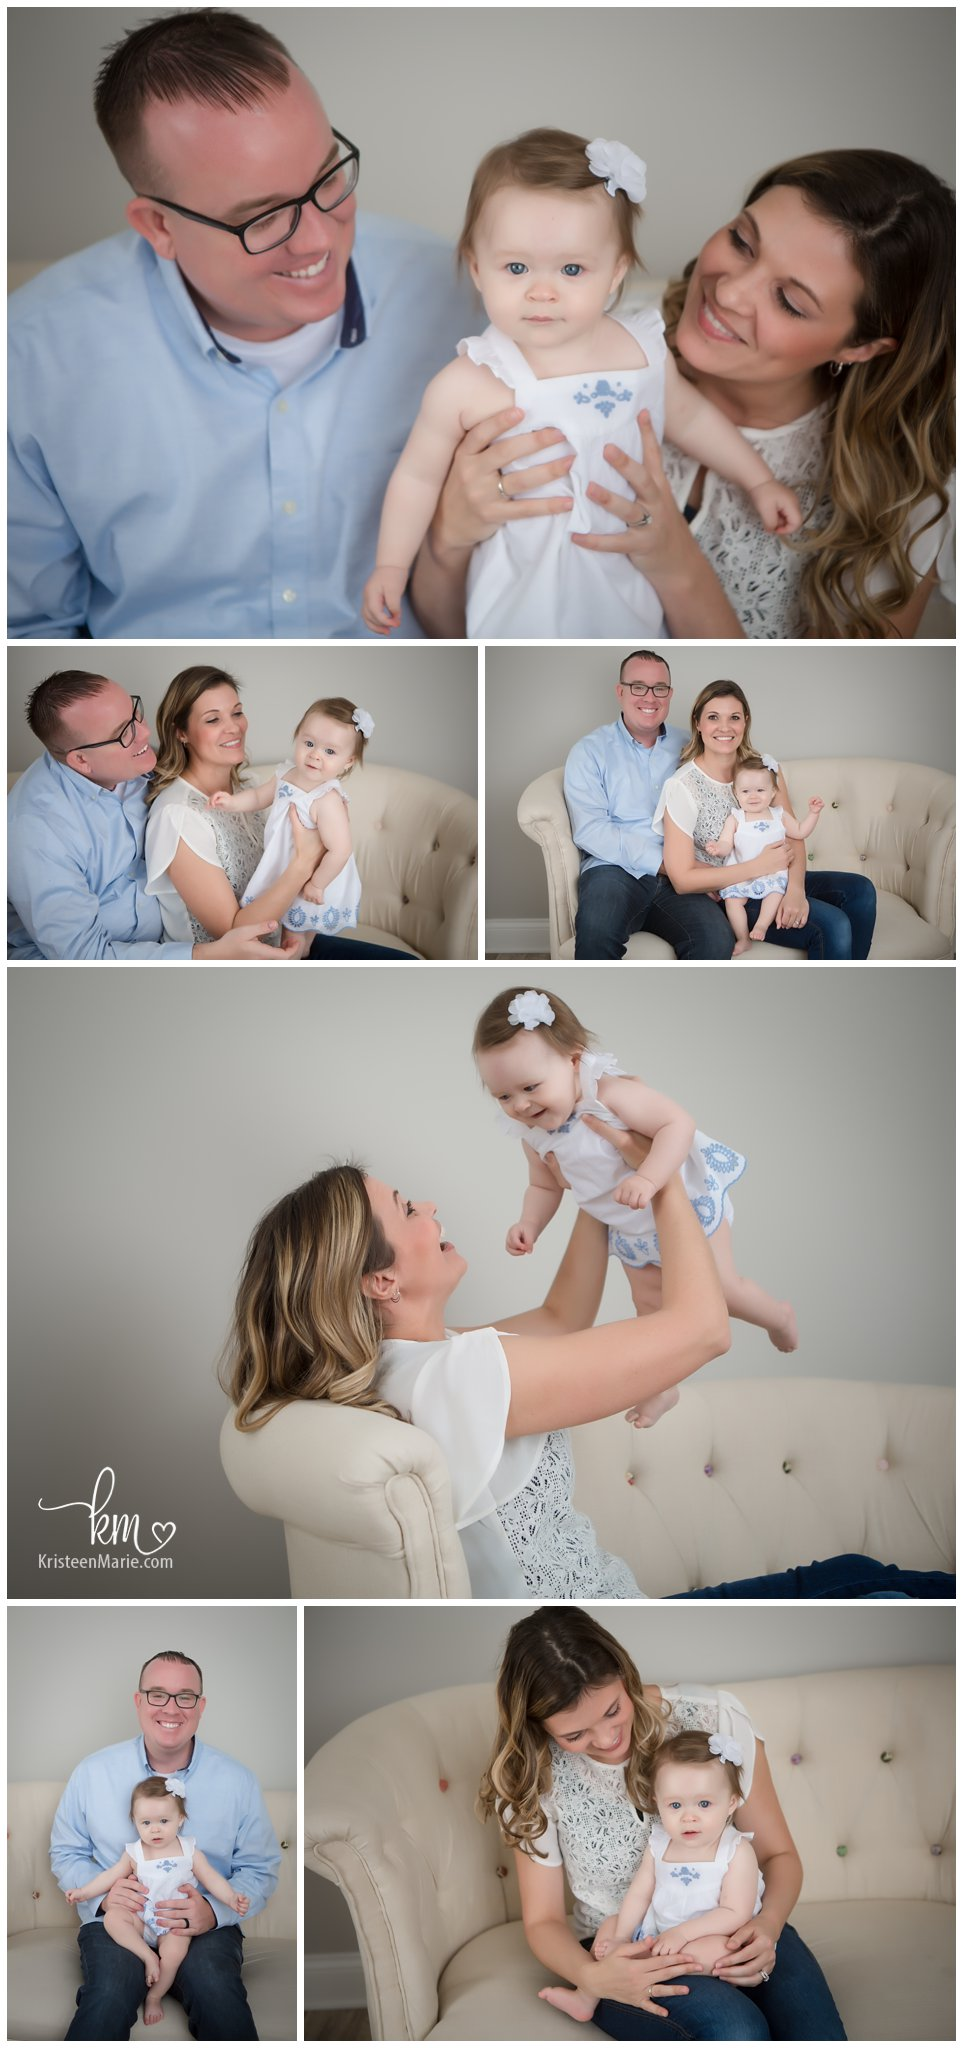 family pictures during sitter session - Indianapolis Photography Studio